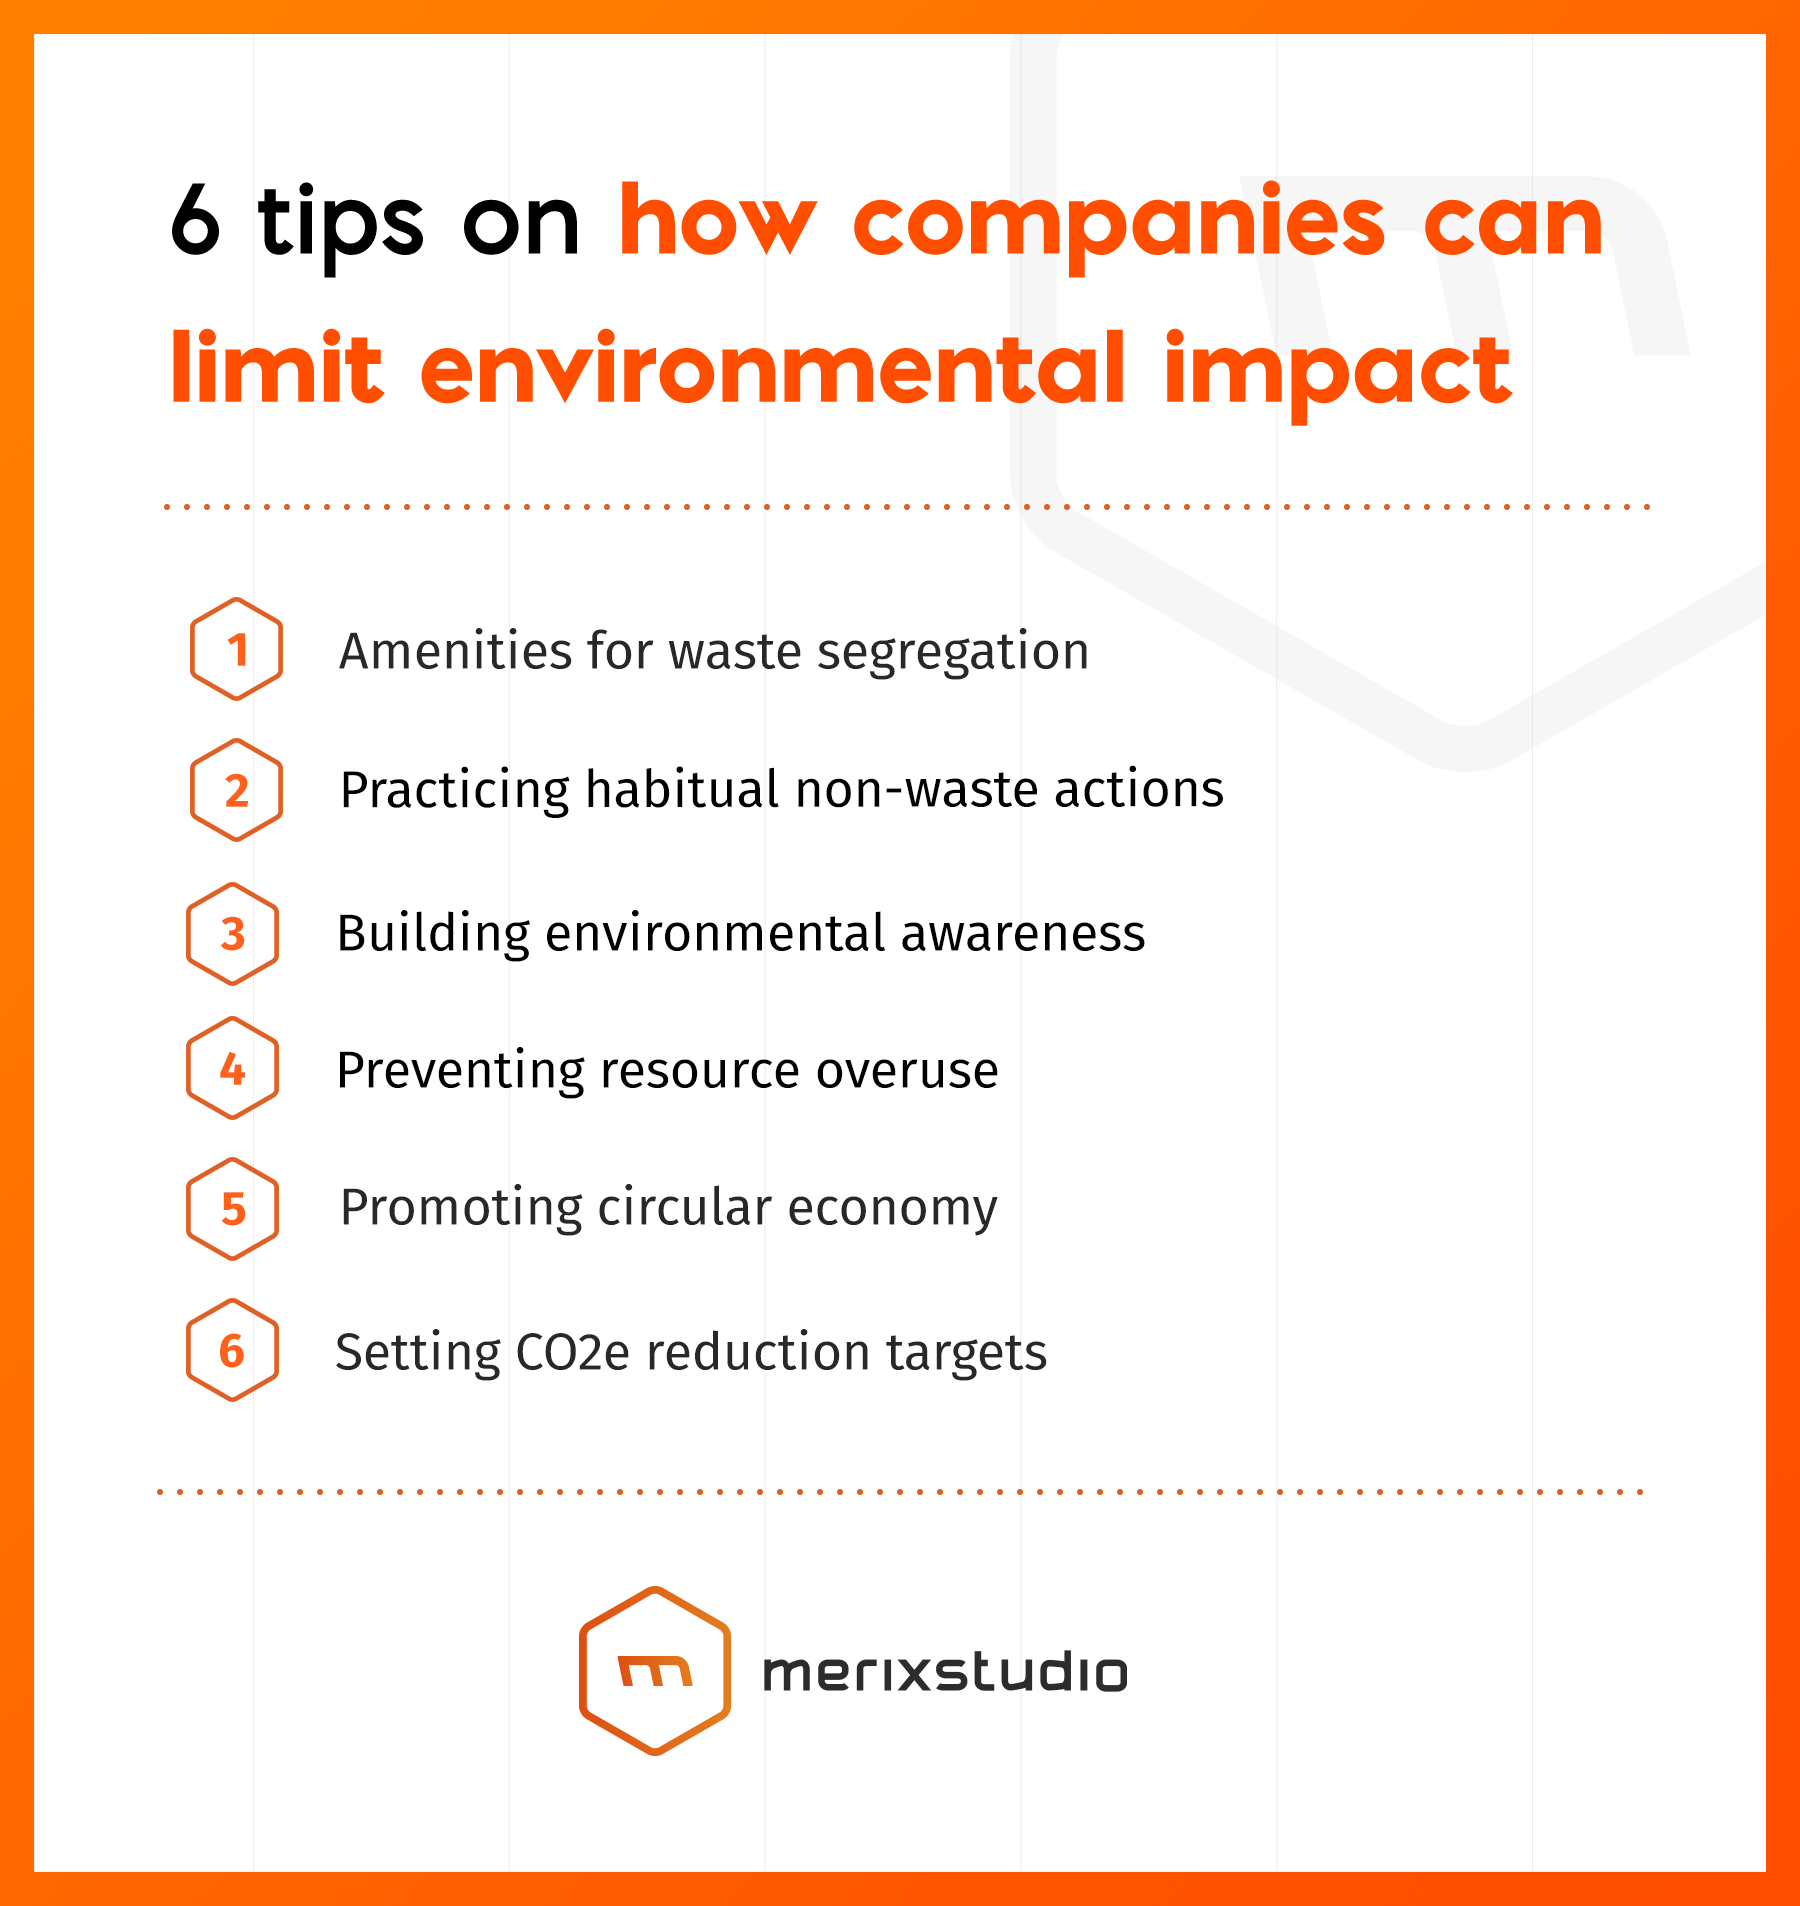 6 tips on how companies can limit environmental impact_Merixstudio